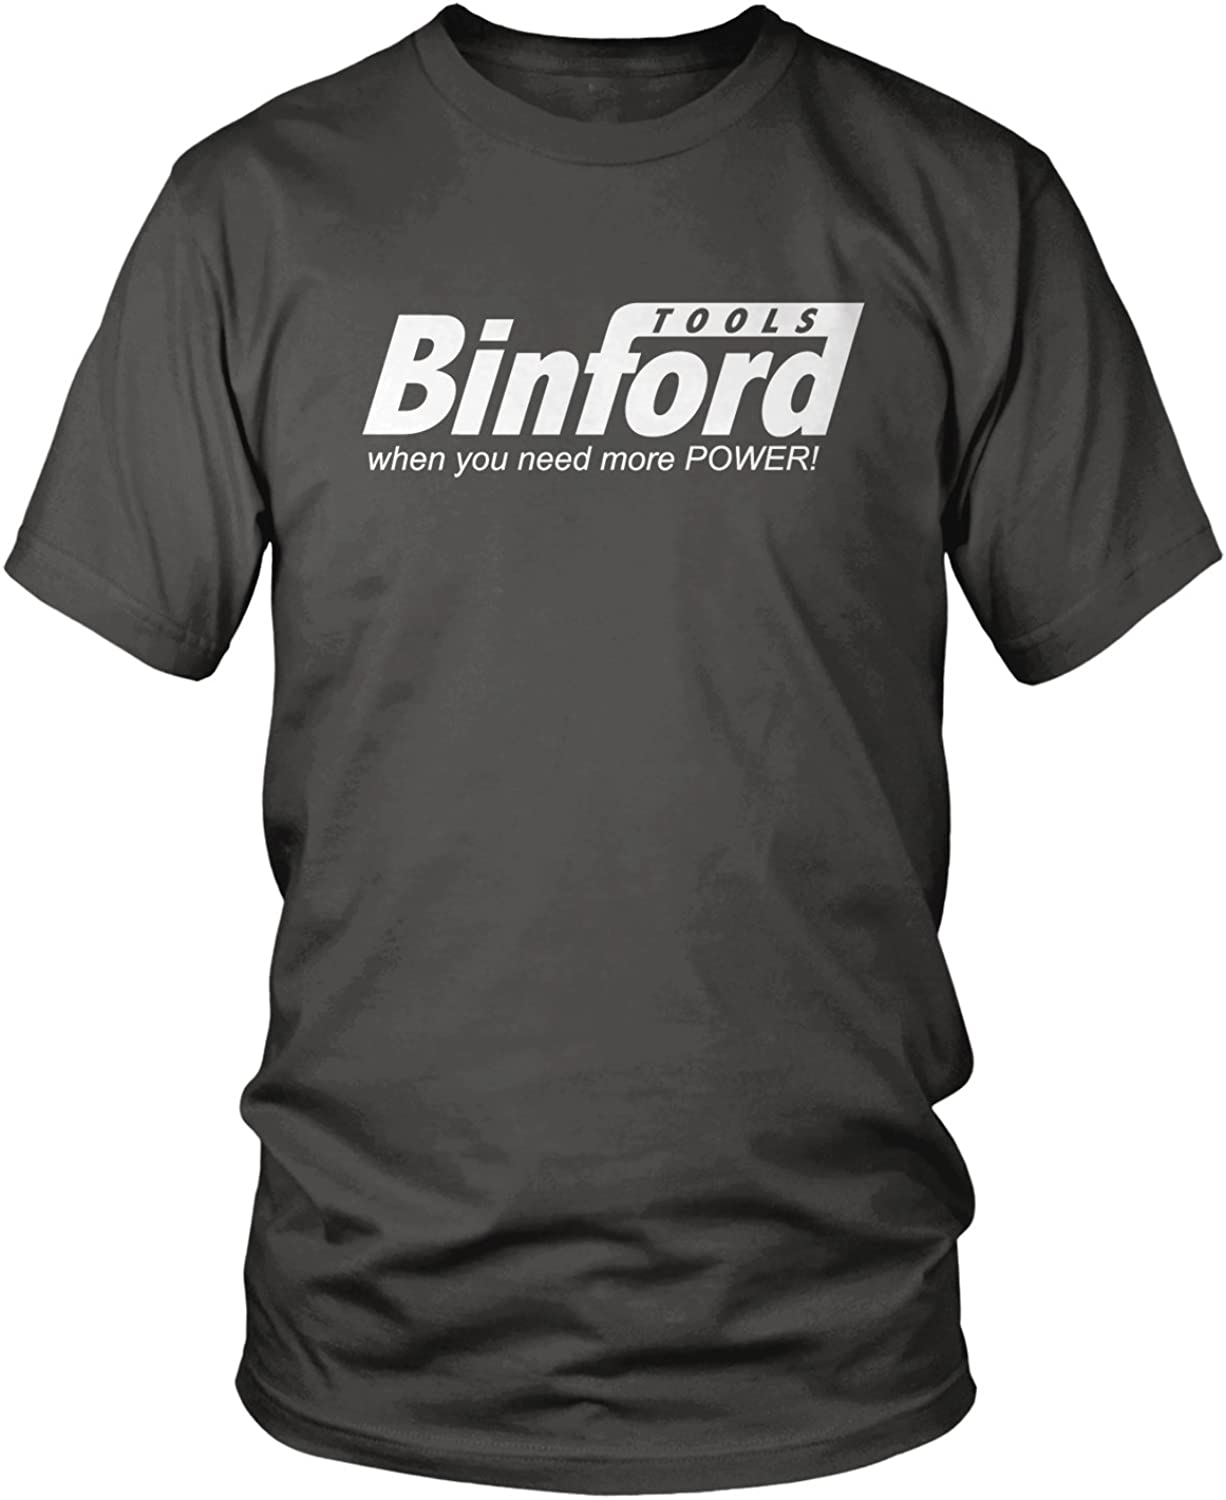 Amdesco Men's Binford Tools, When You Need More Power T-Shirt